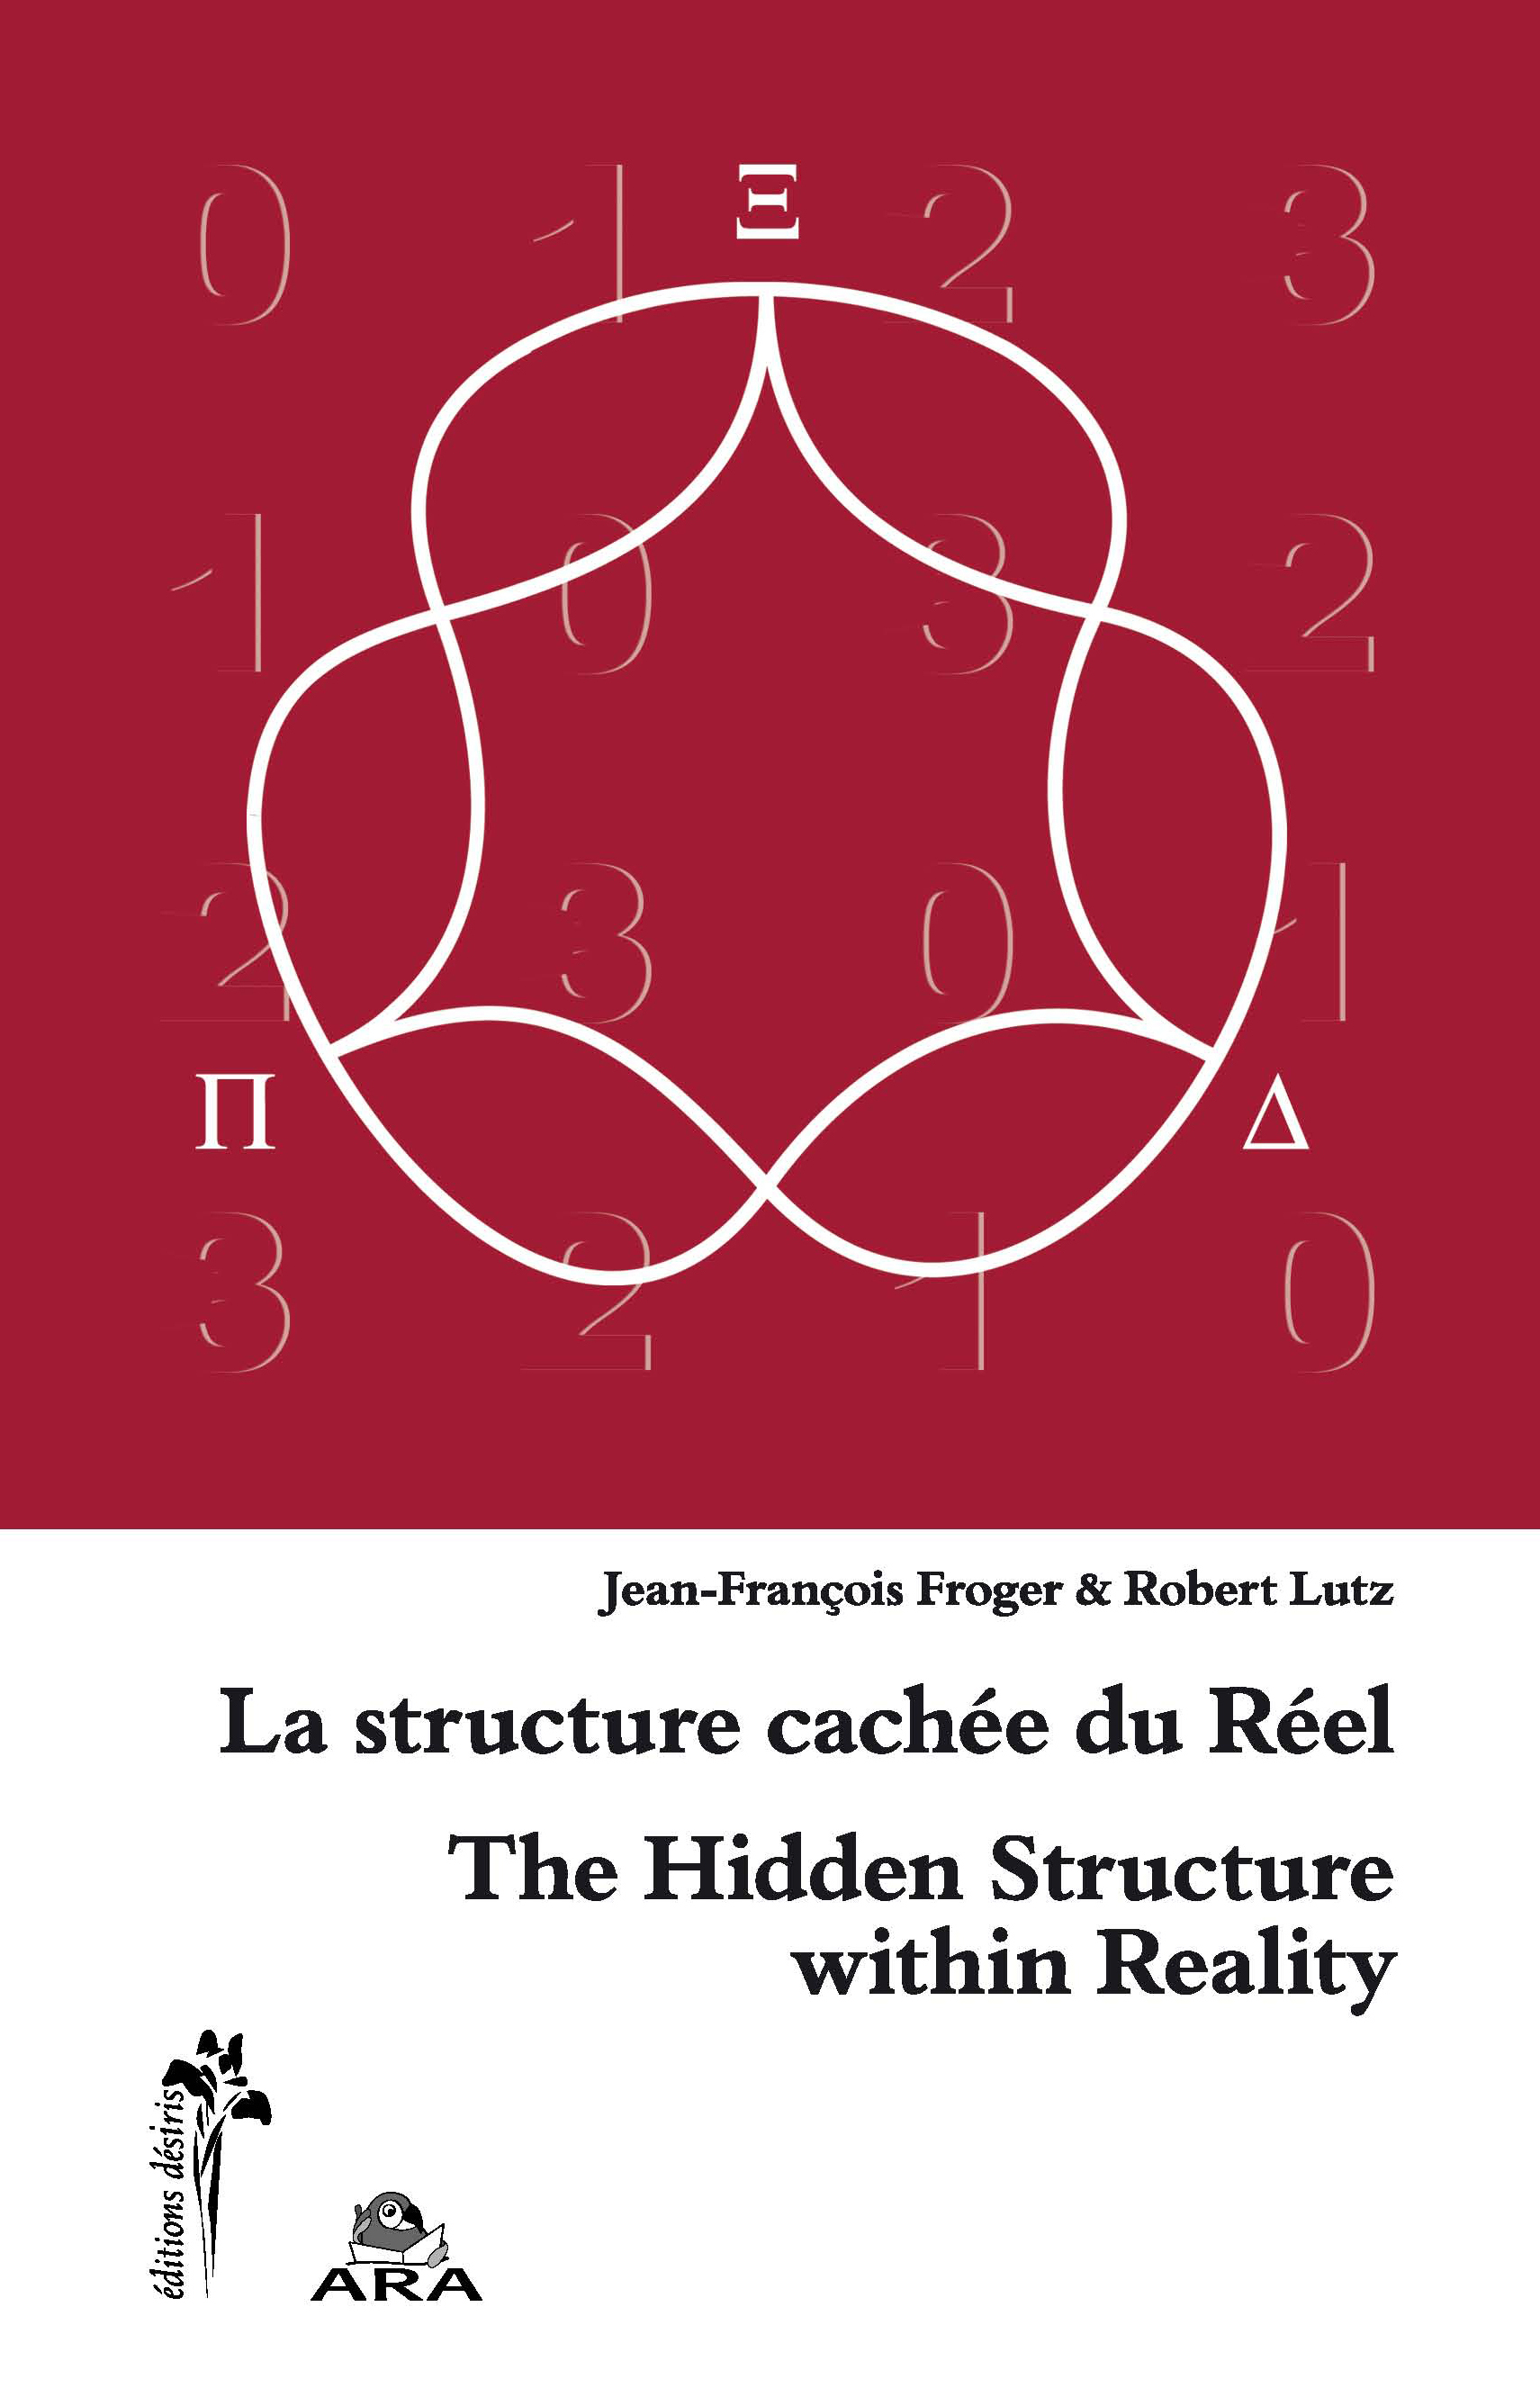 LA STRUCTURE CACHEE DU REEL, THE HIDDEN STRUCTURE WITHIN REALITY